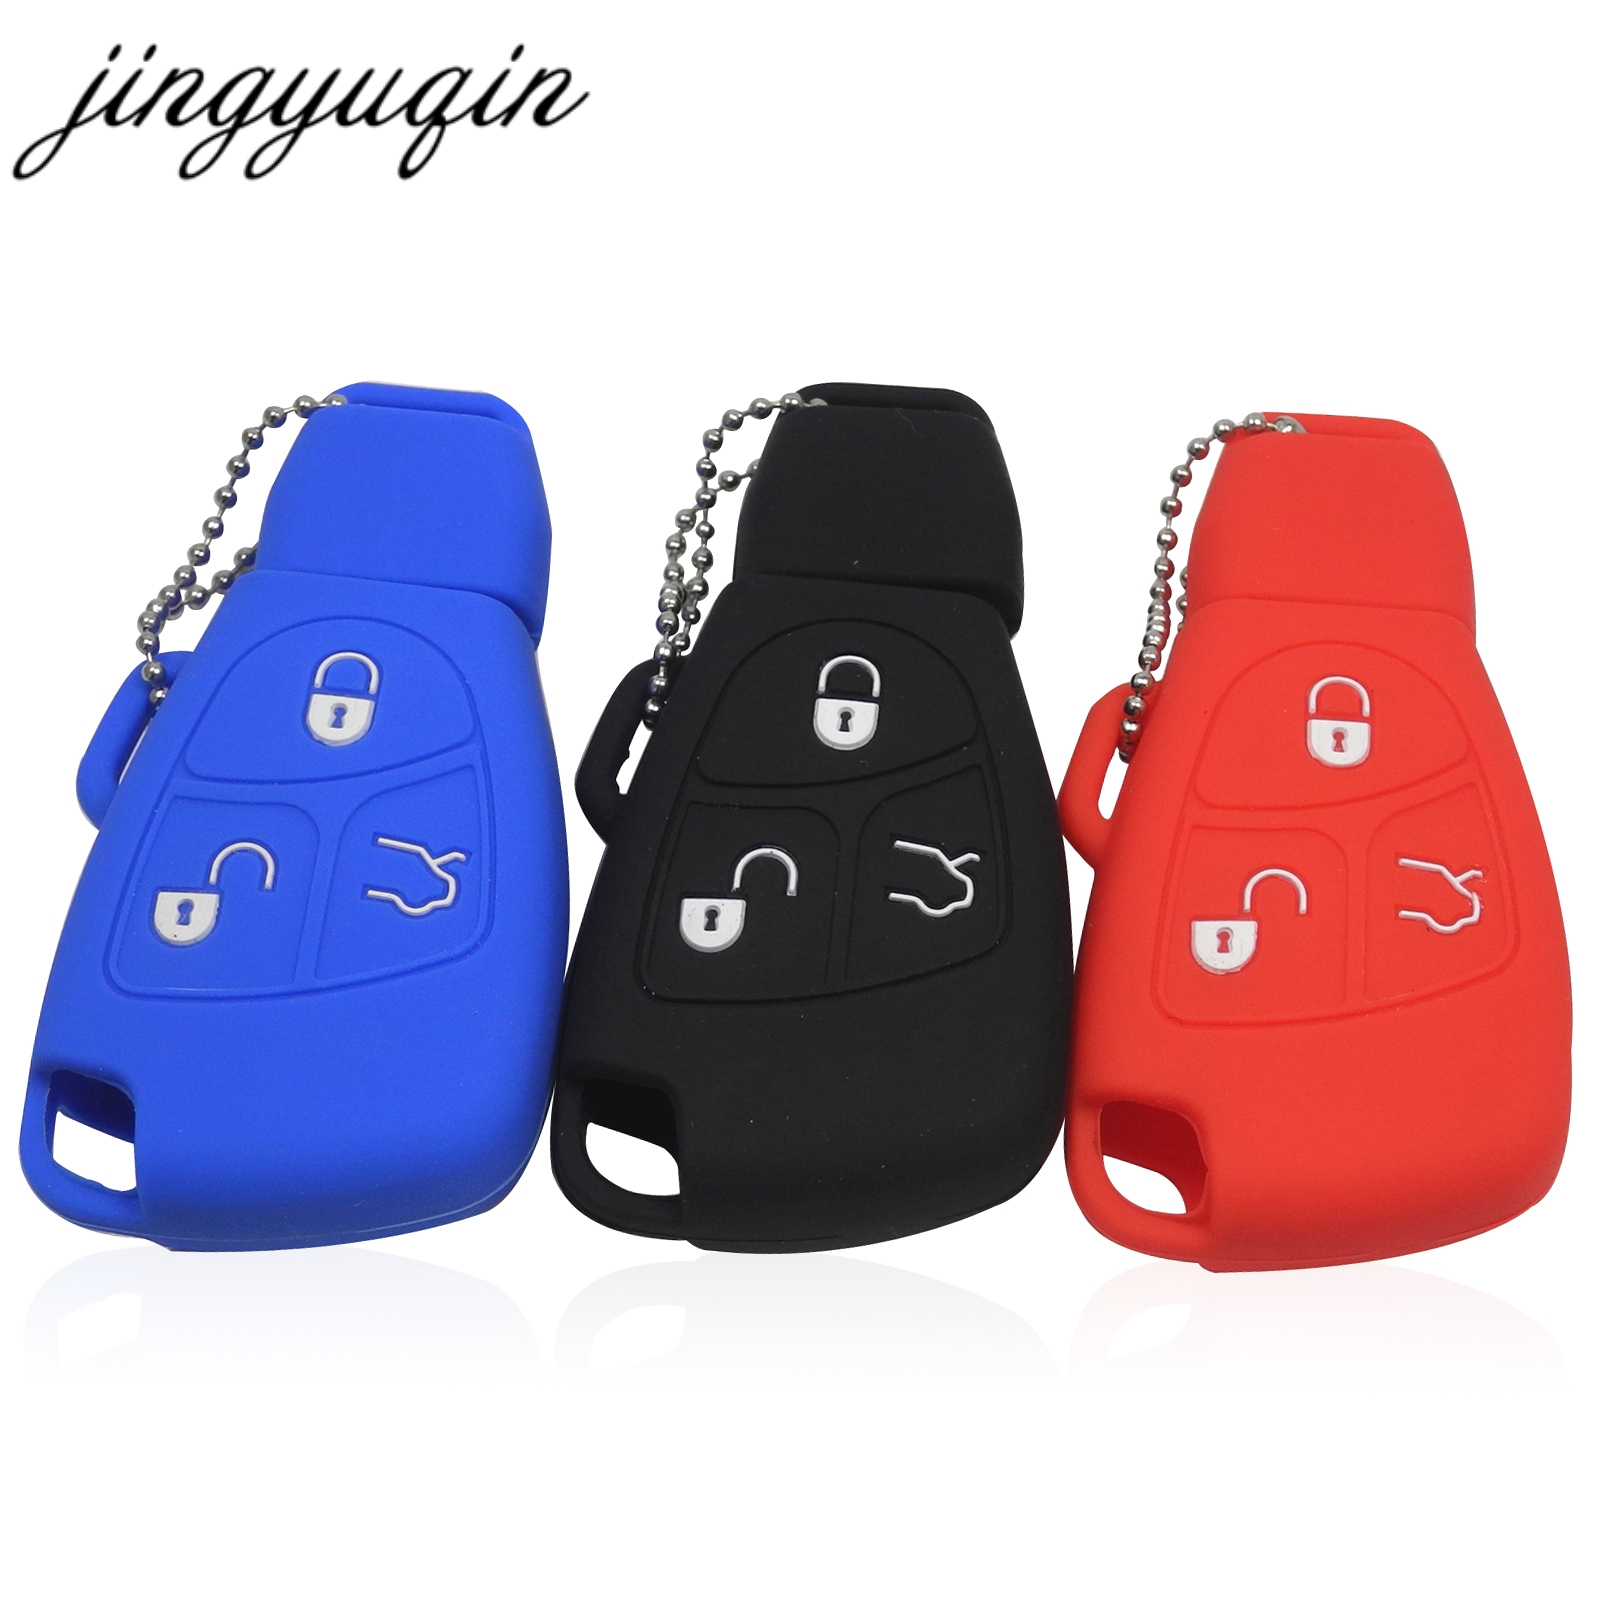 jingyuqin Silicone Cover For Mercedes Benz B C E ML S CLK CL 3 Buttons Remote Key Fob Case недорого